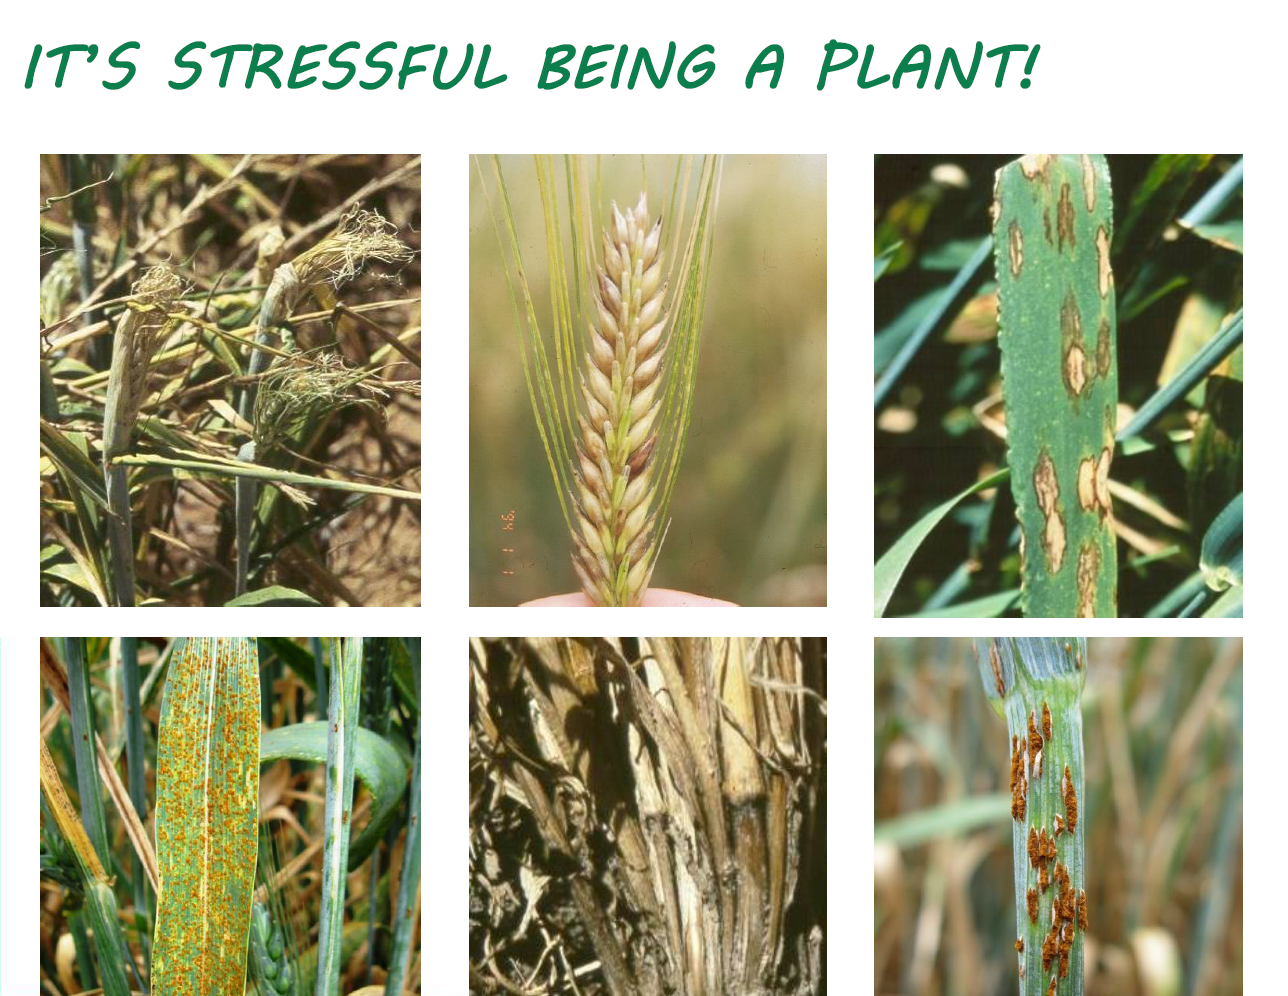 Its stressful being a plant - Nature curiosity stressed out plants emit animal like signals ...